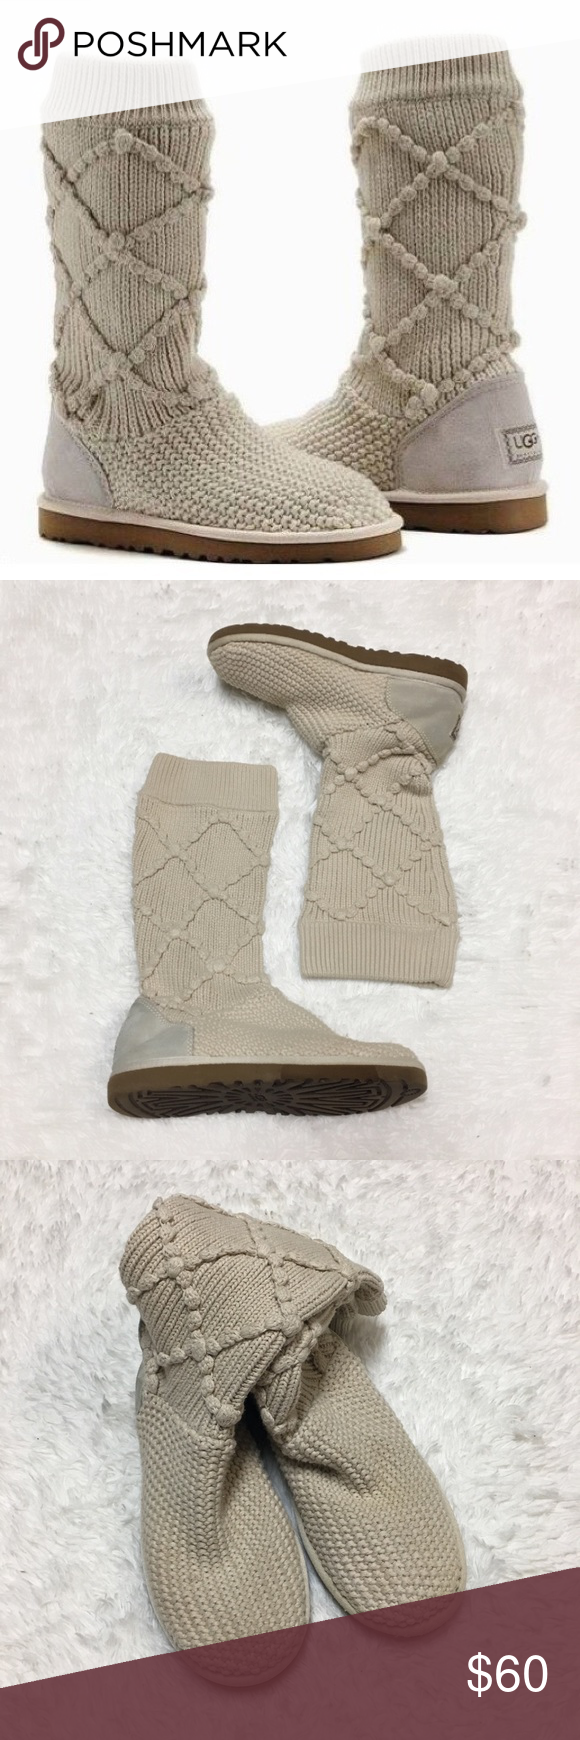 4432e9759cf UGG Cream Sweater Knit Boots | My Posh Closet | Pinterest | Fashion ...